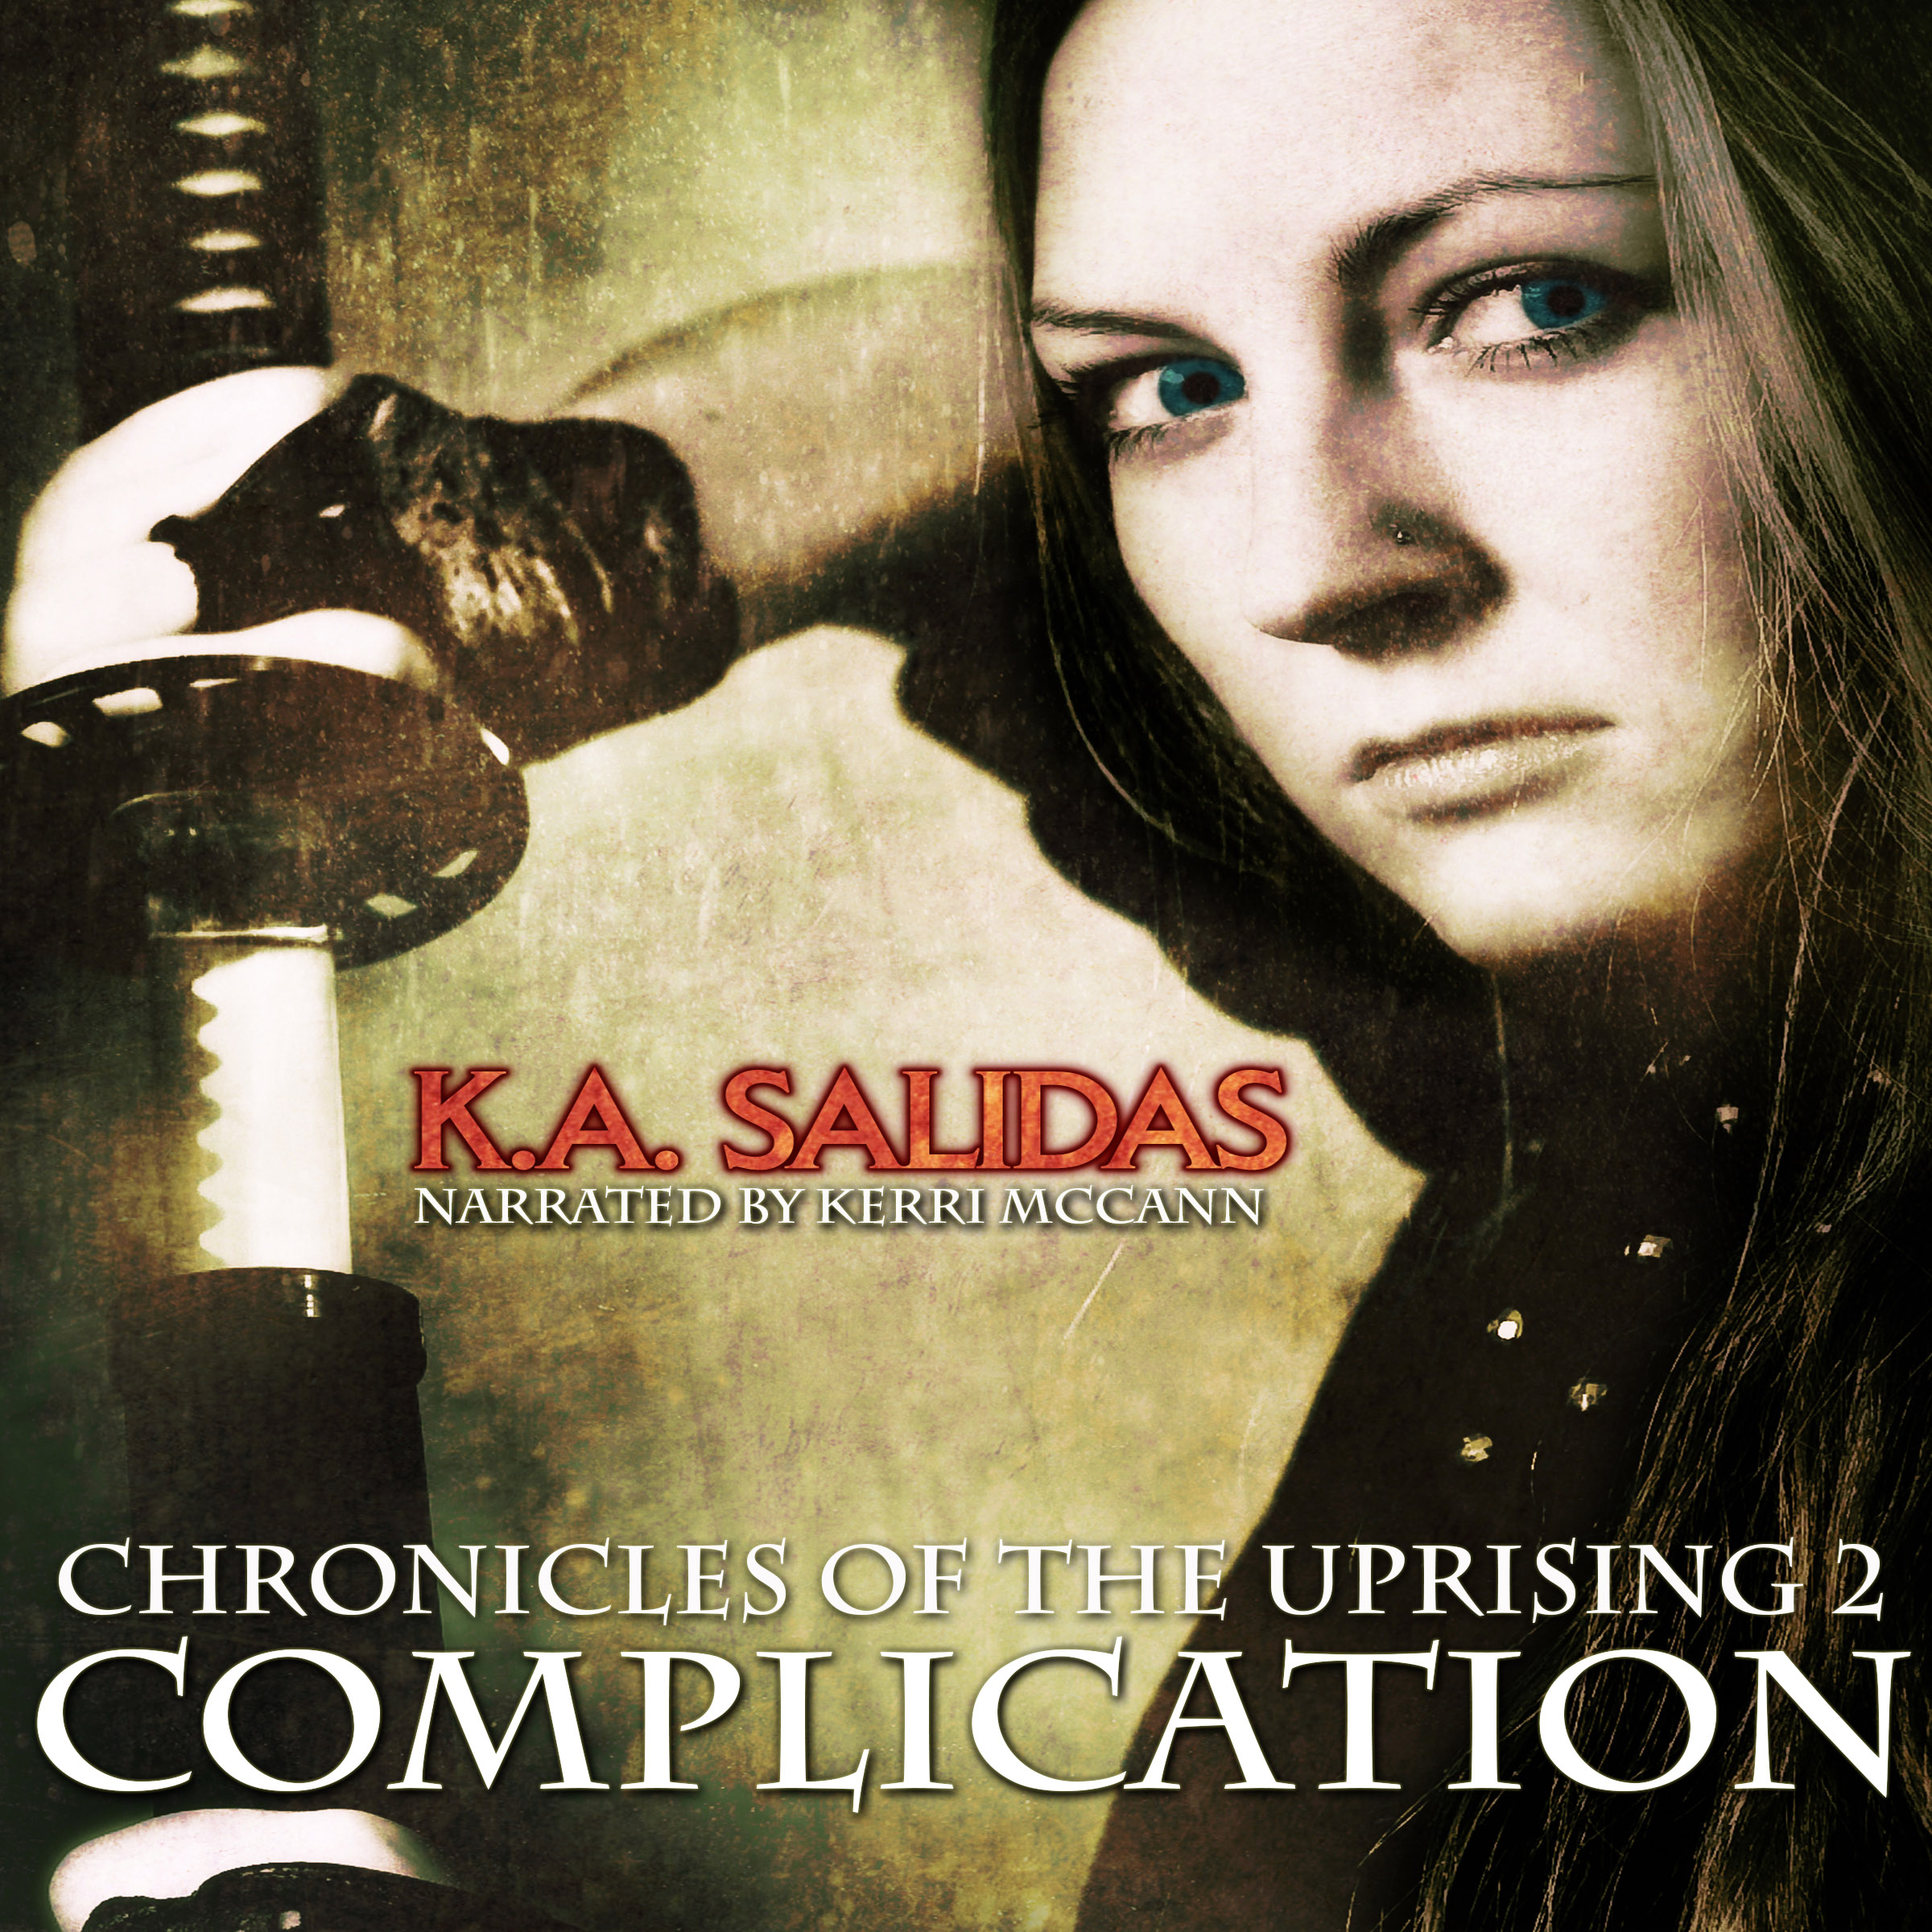 Complication by Katie Salidas